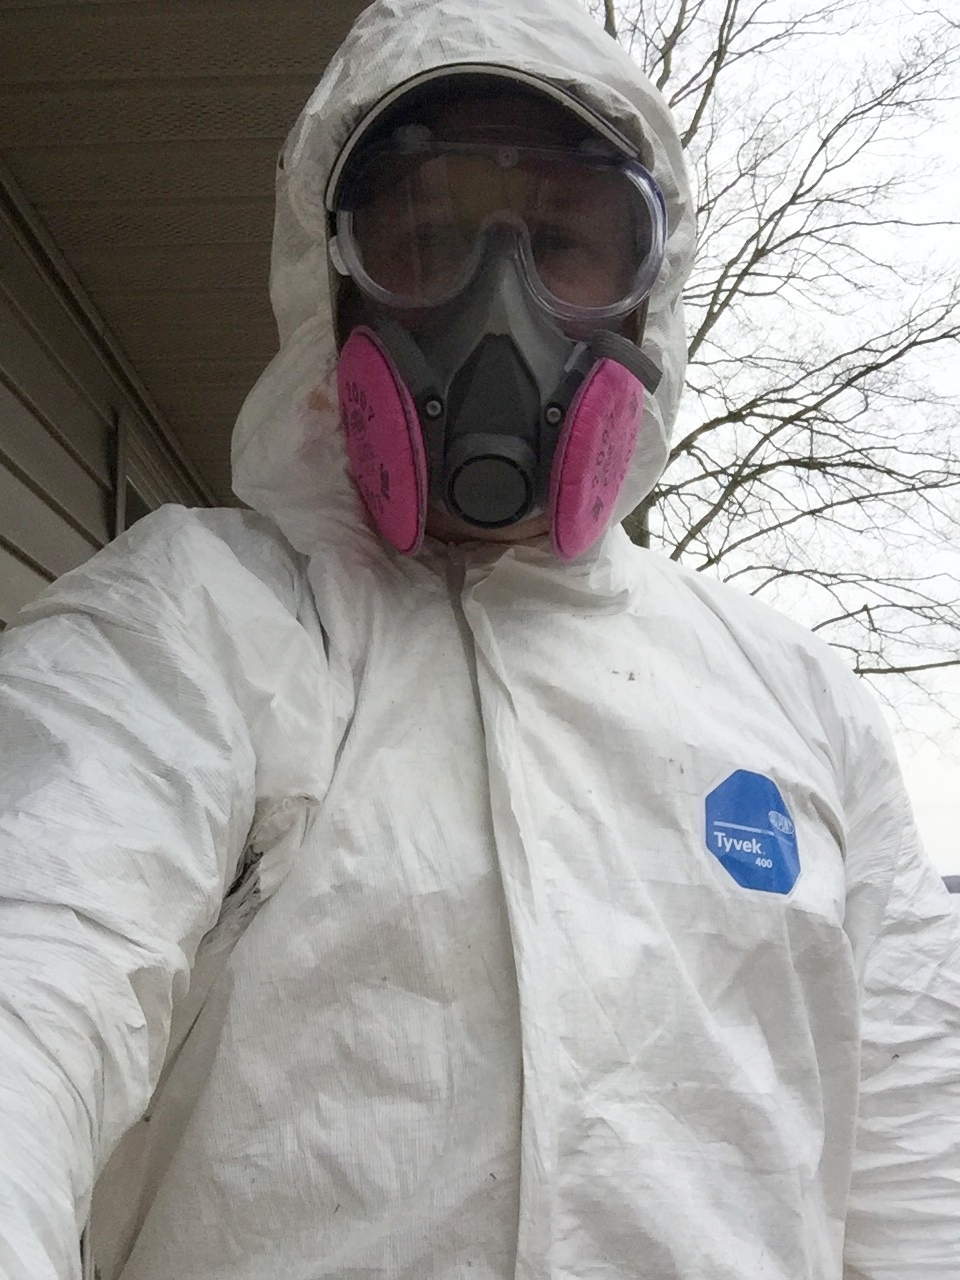 Full body suit, respirator, goggles, and gloves are available at most hardware stores.  Does my hair look OK?